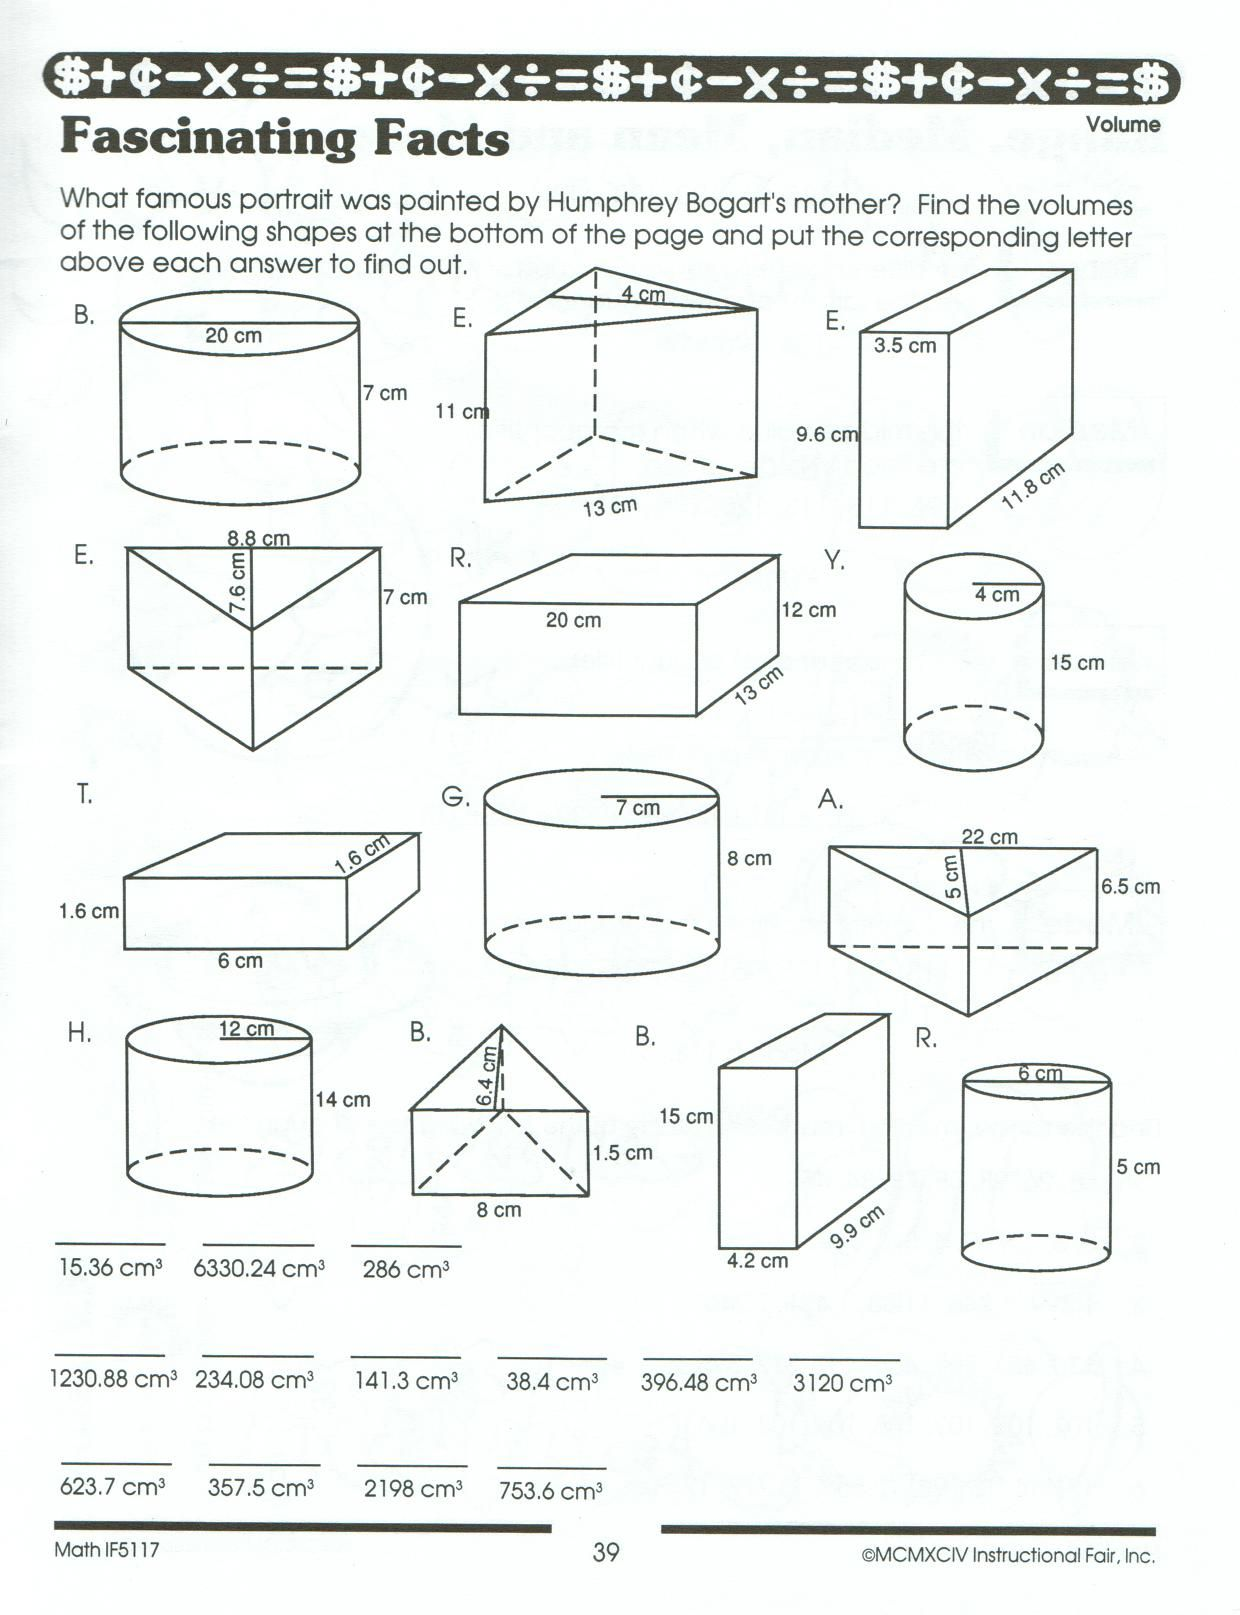 Watch The Clip Recognising A Prism Use The Clip To Answer These Questions What Does The Volume